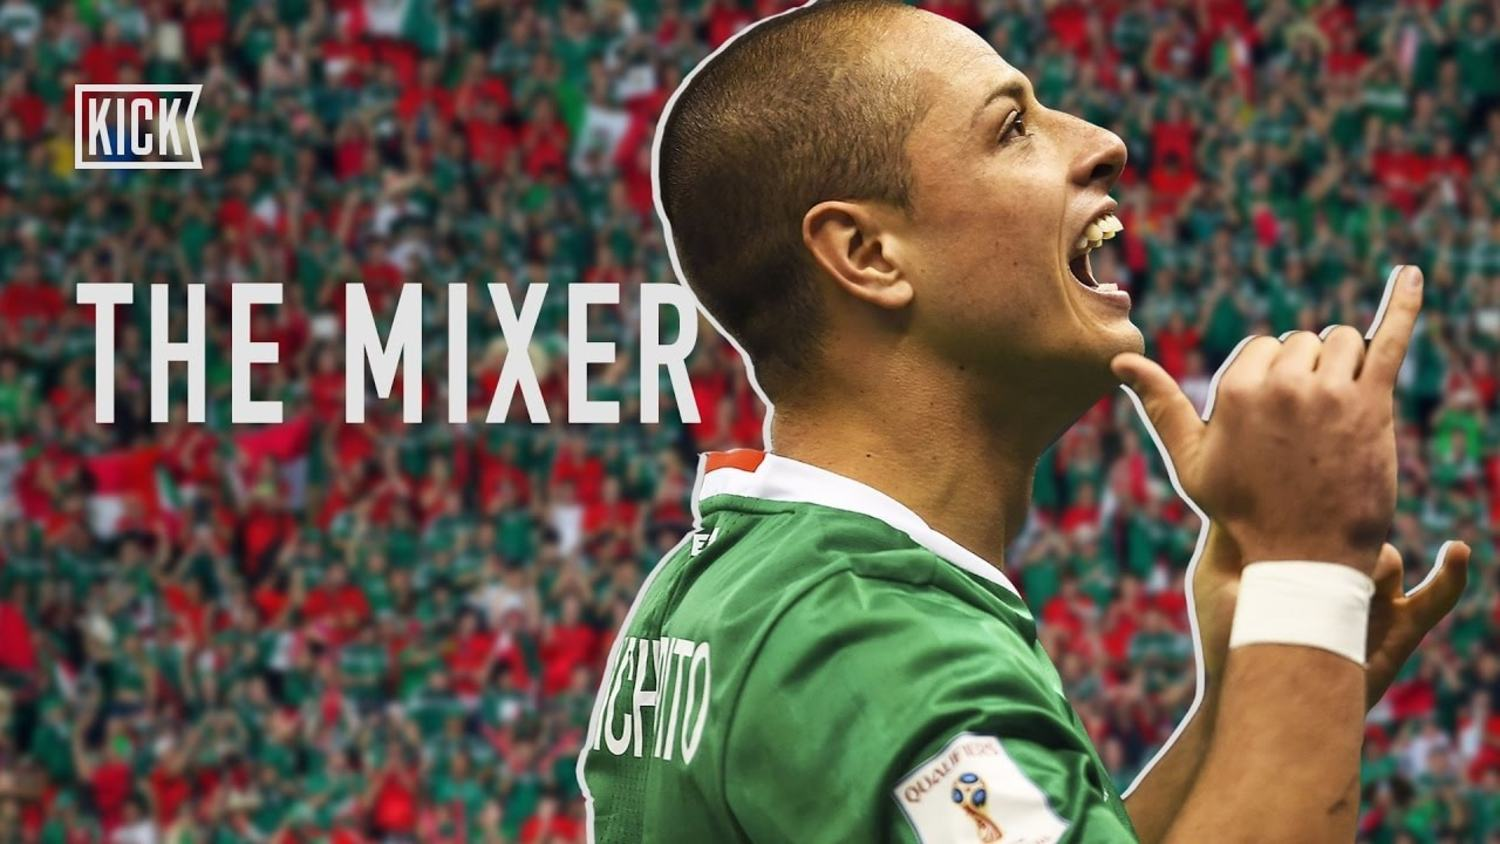 Sorry US Fans, Mexico Still The Best